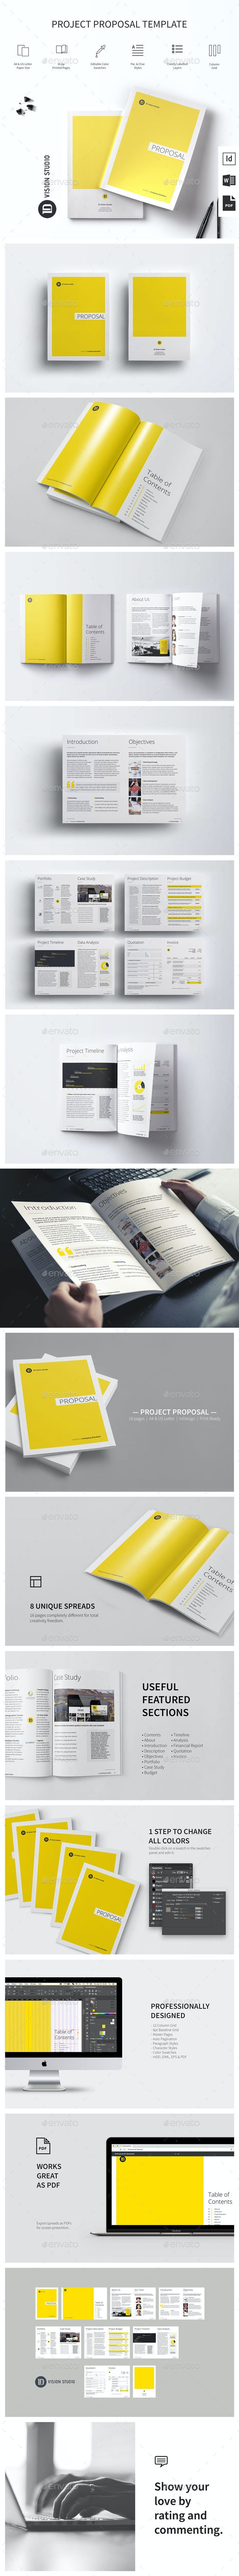 Project Proposal Template 001 - Proposals & Invoices Stationery